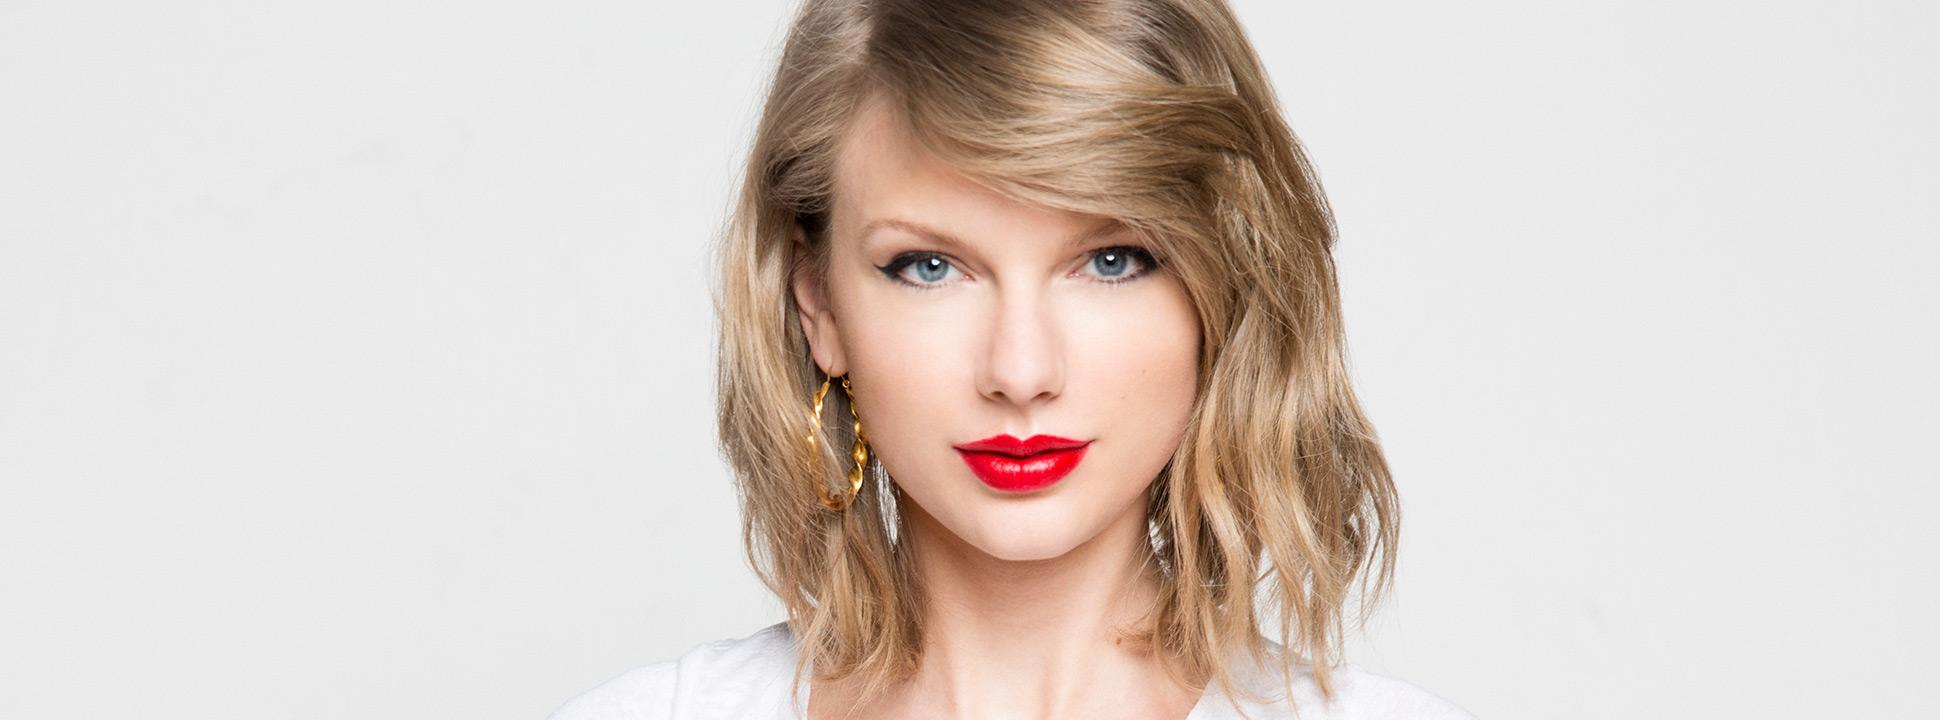 1000+ images about taylor swift on Pinterest | Initials ...